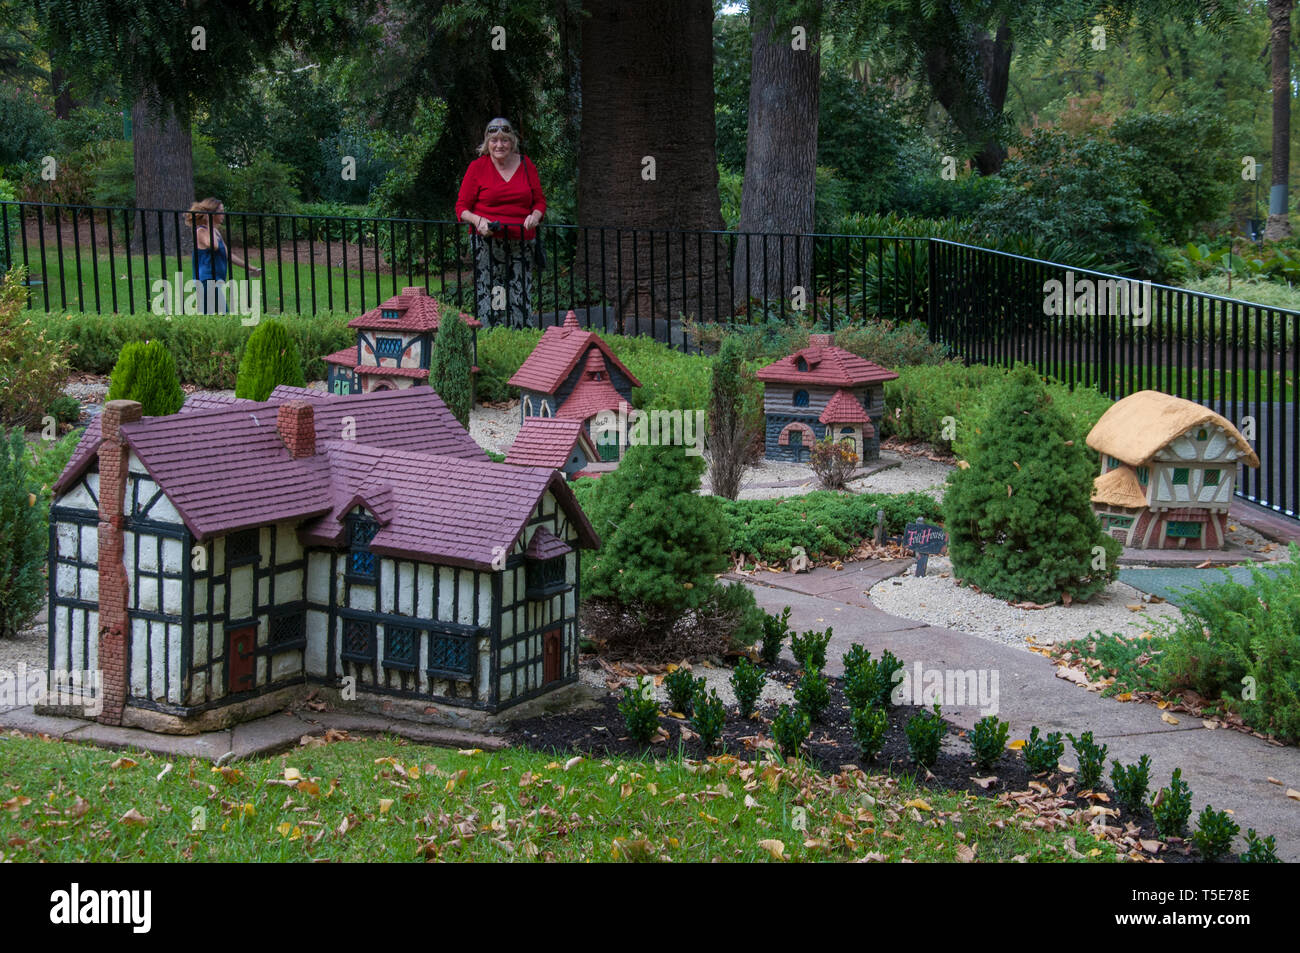 Model Tudor village in Fitzroy Gardens, East Melbourne, Australia Stock Photo